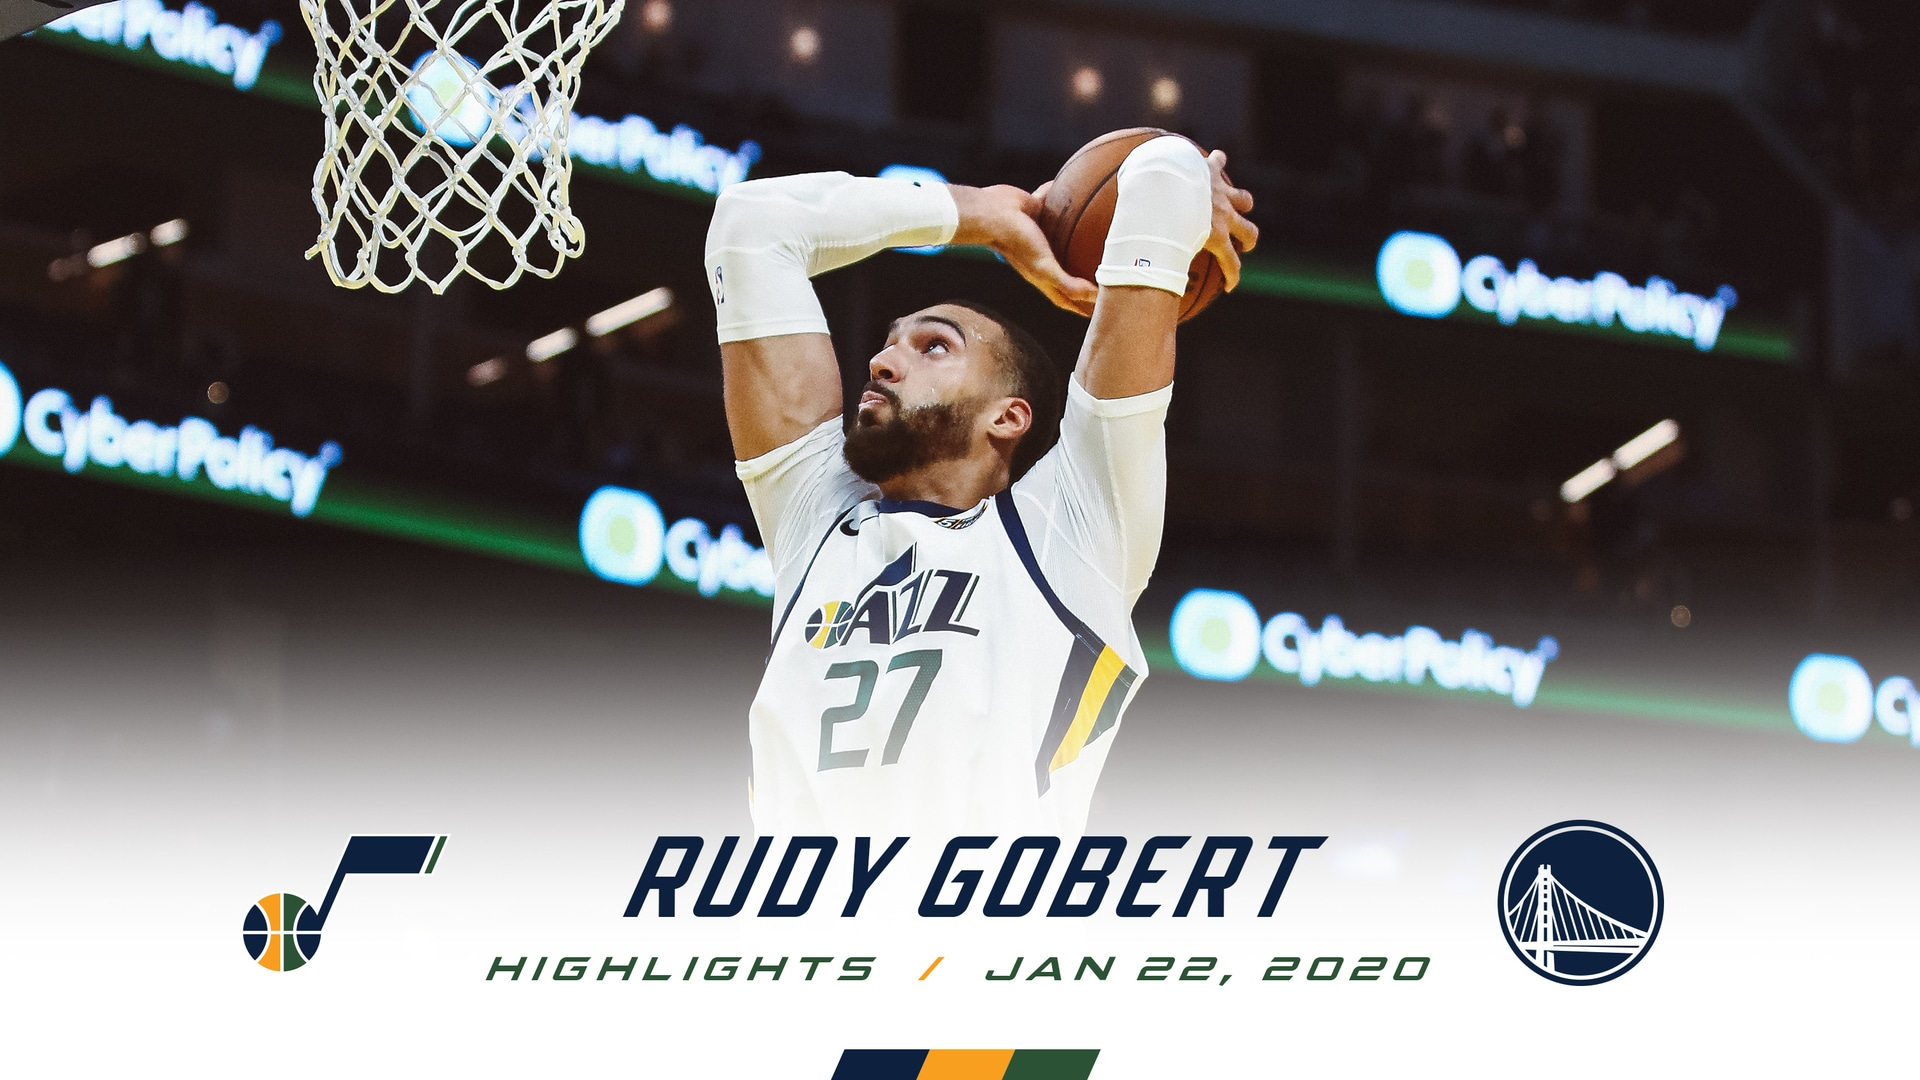 Highlights: Rudy Gobert—22 points, 15 rebounds